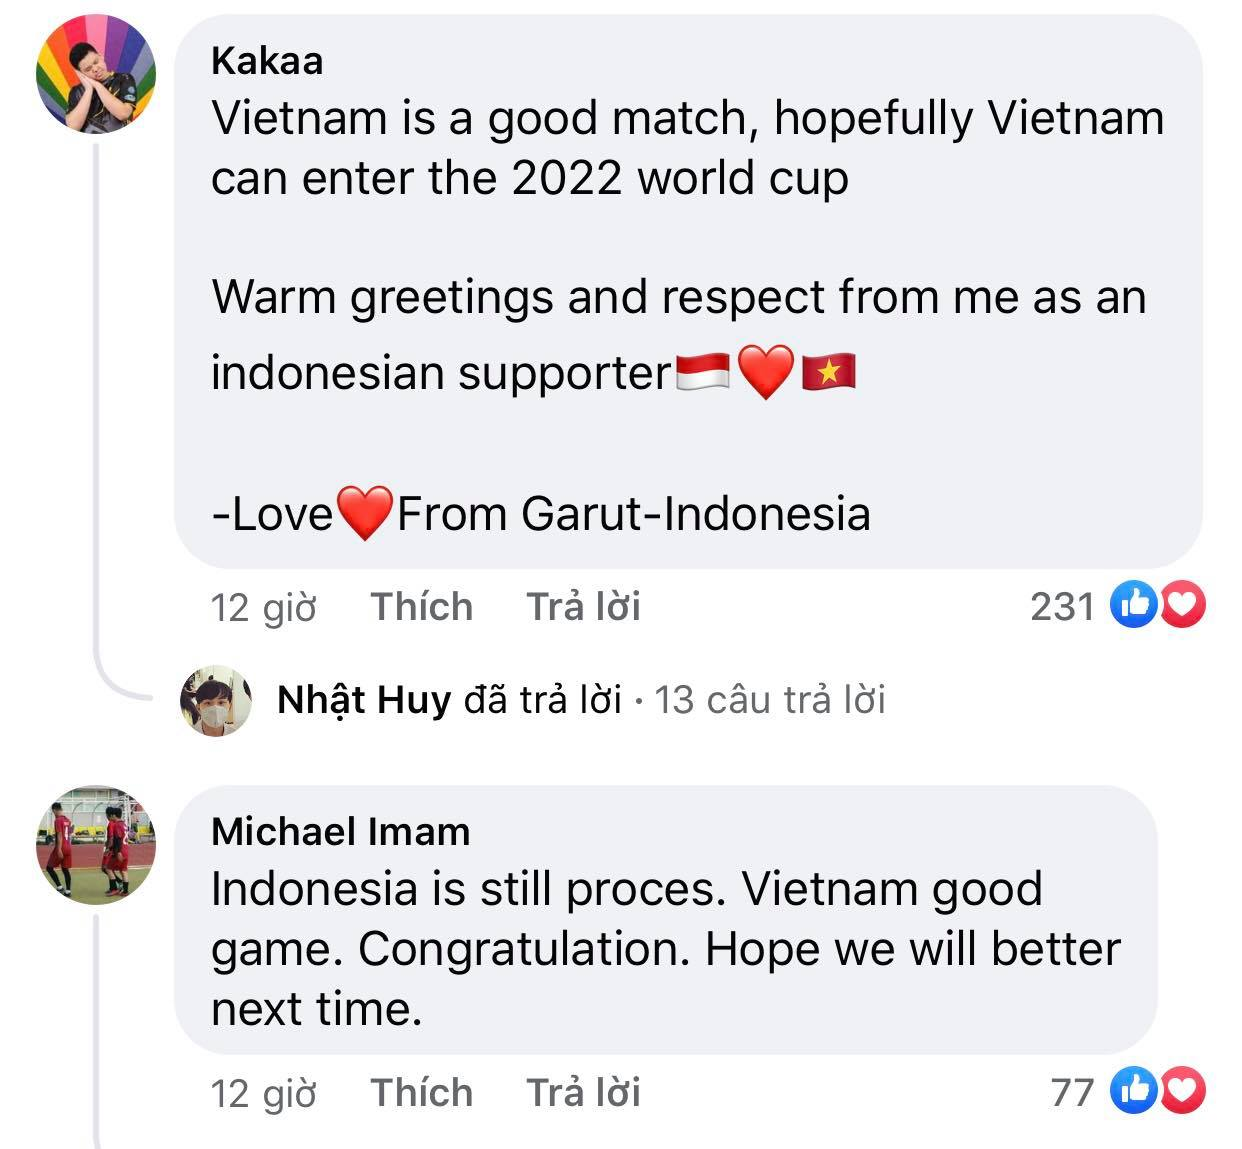 Vietnam's victory makes Indonesian fans admire and respect 9